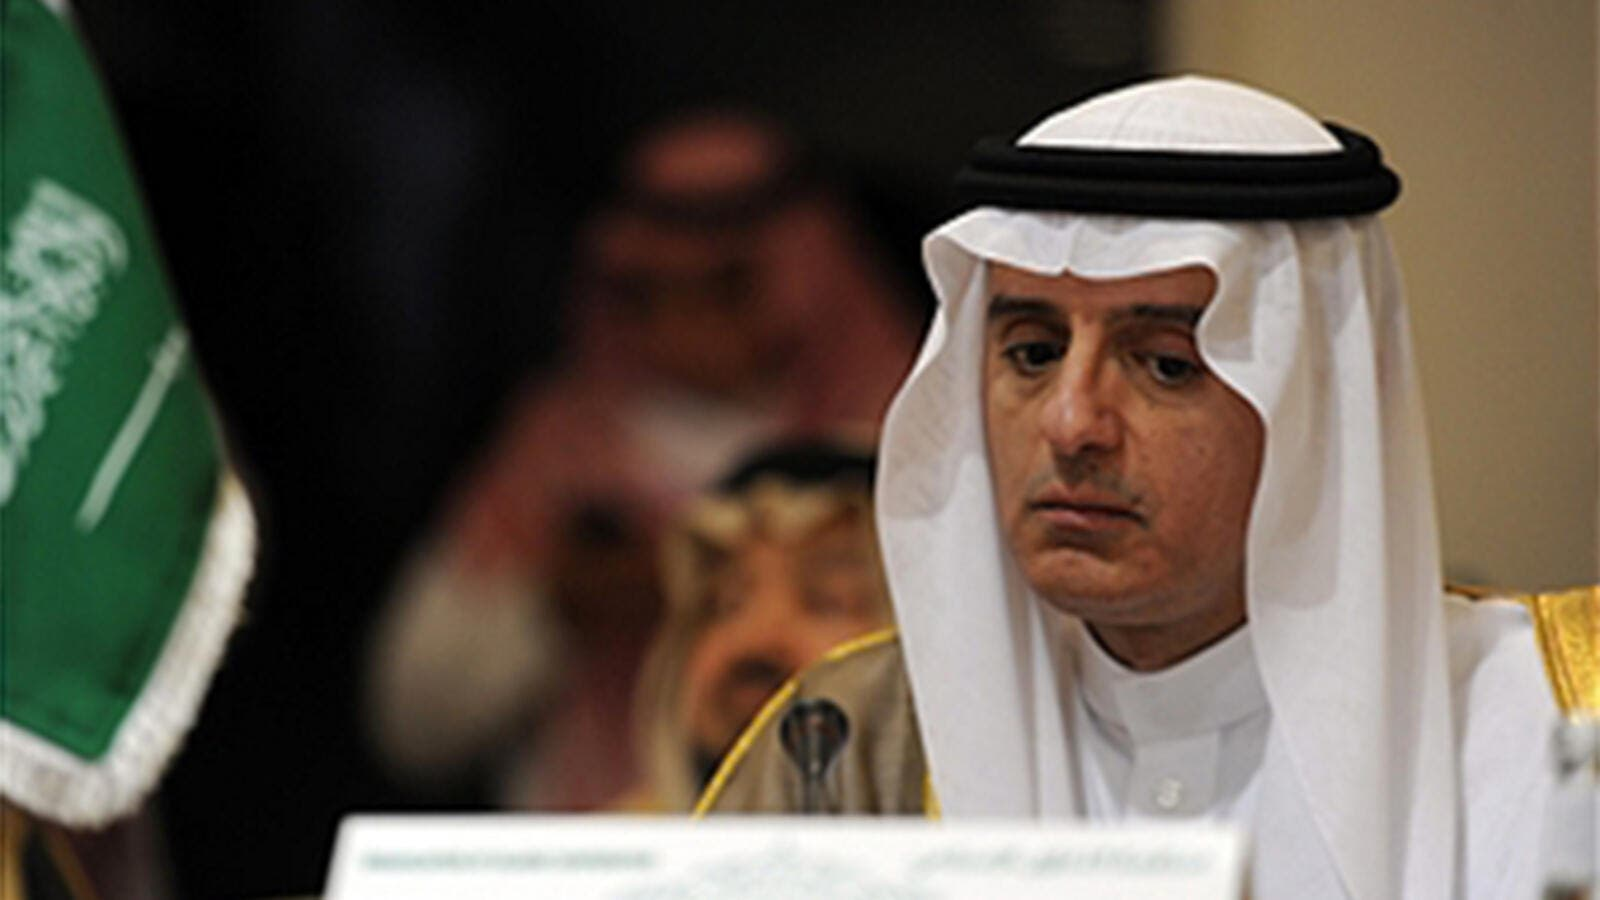 Saudi Foreign Minister Adel al-Jubeir attends a meeting by the Organization of Islamic Cooperation (OIC) in Jeddah on December 22, 2016, to discuss the situation in Syria. (AFP)